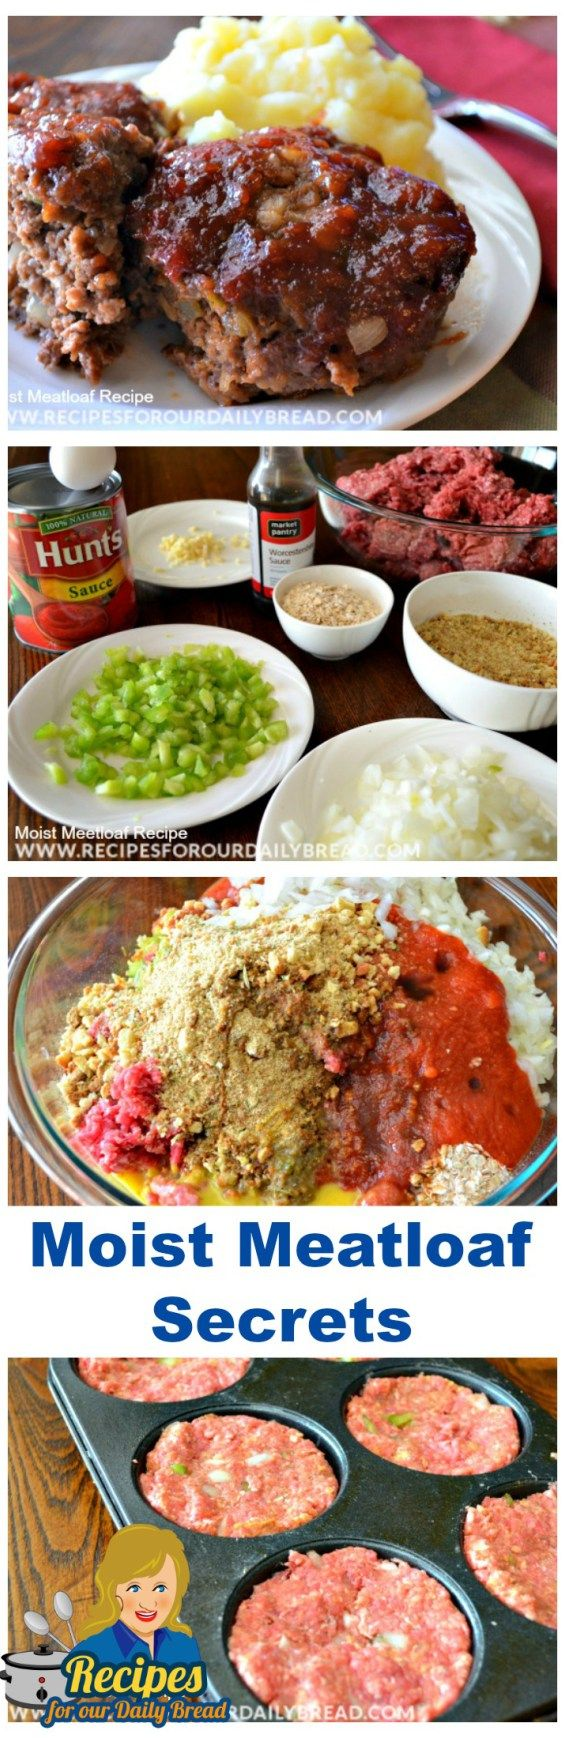 Moist #Meatloaf #Recipe Best #Sauce - This meatloaf is the best ever. Extremely moist and flavorful.